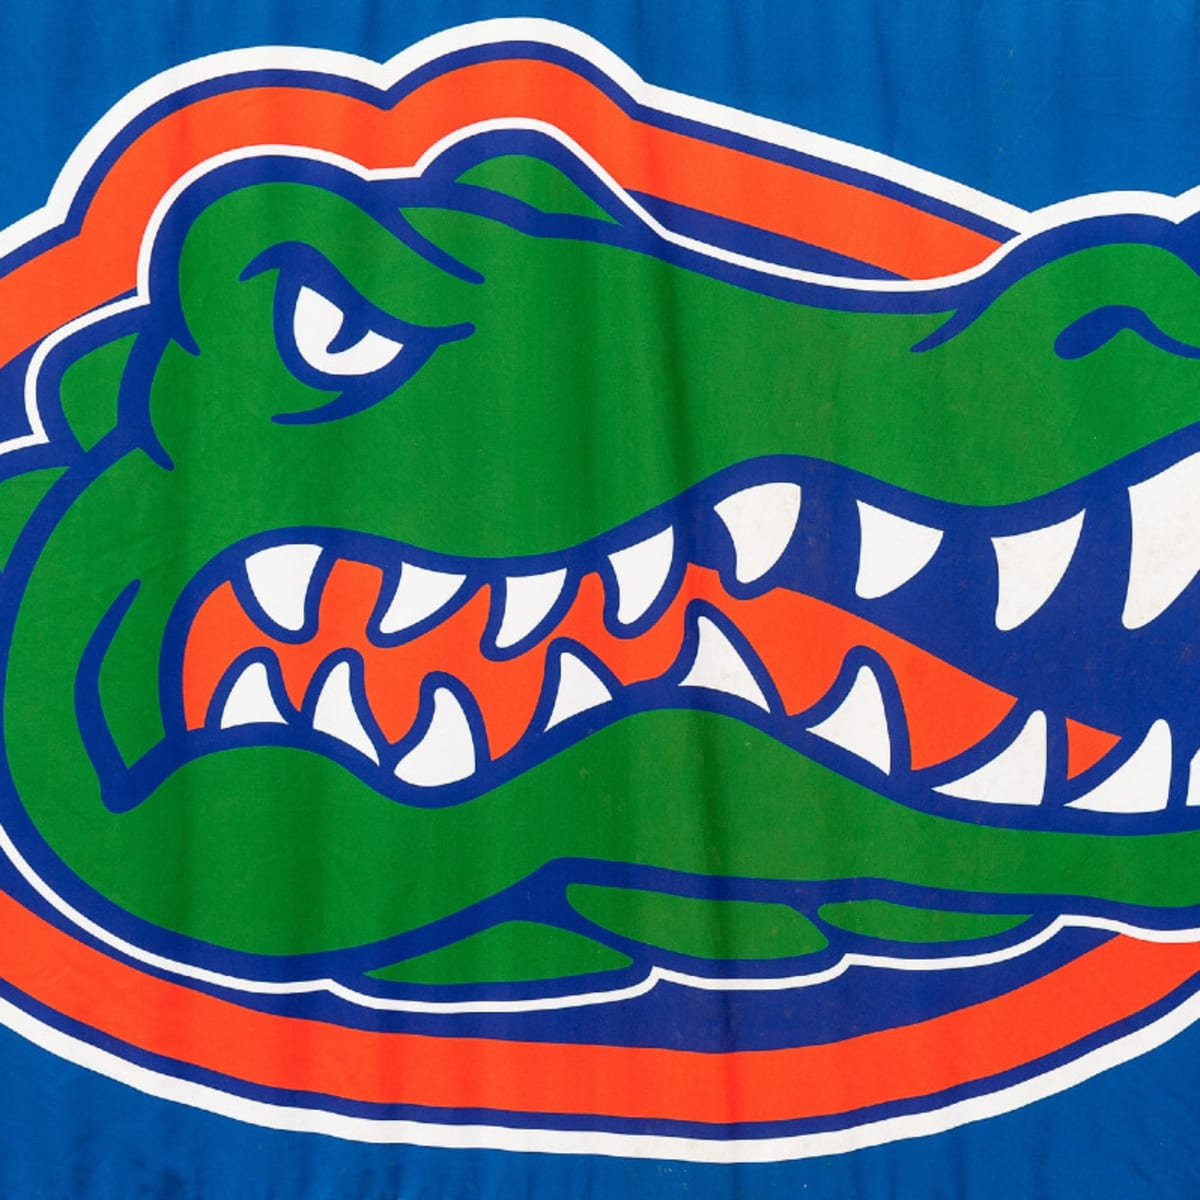 Uf Fall 2022 Academic Calendar.Uf Announces Fall Semester Plan Emphasizes Health Safety And Testing Sports Illustrated Florida Gators News Analysis And More